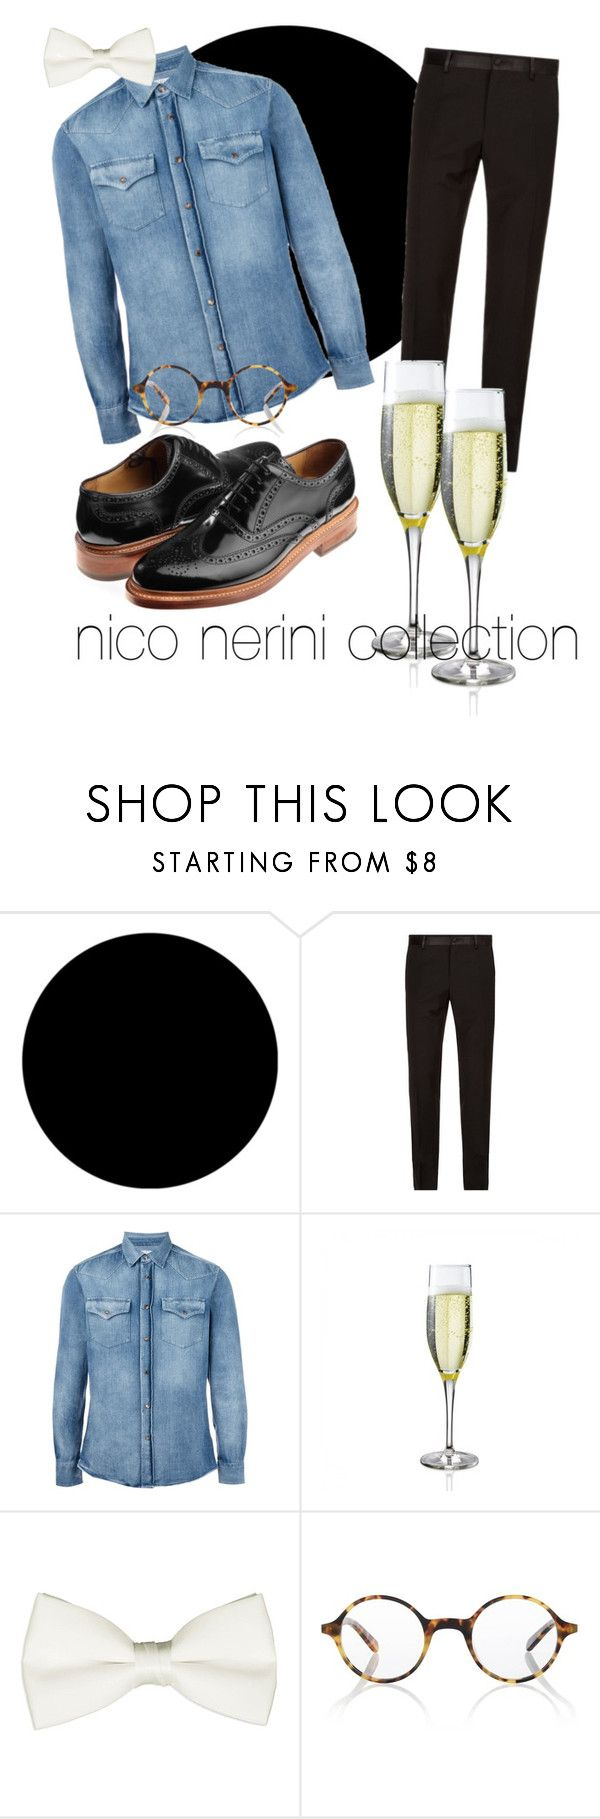 """Are you ready for the good time?!"" by nico-nerini on Polyvore featuring Wall Pops!, Dolce&Gabbana, Brunello Cucinelli, Finlay & Co., men's fashion e menswear"